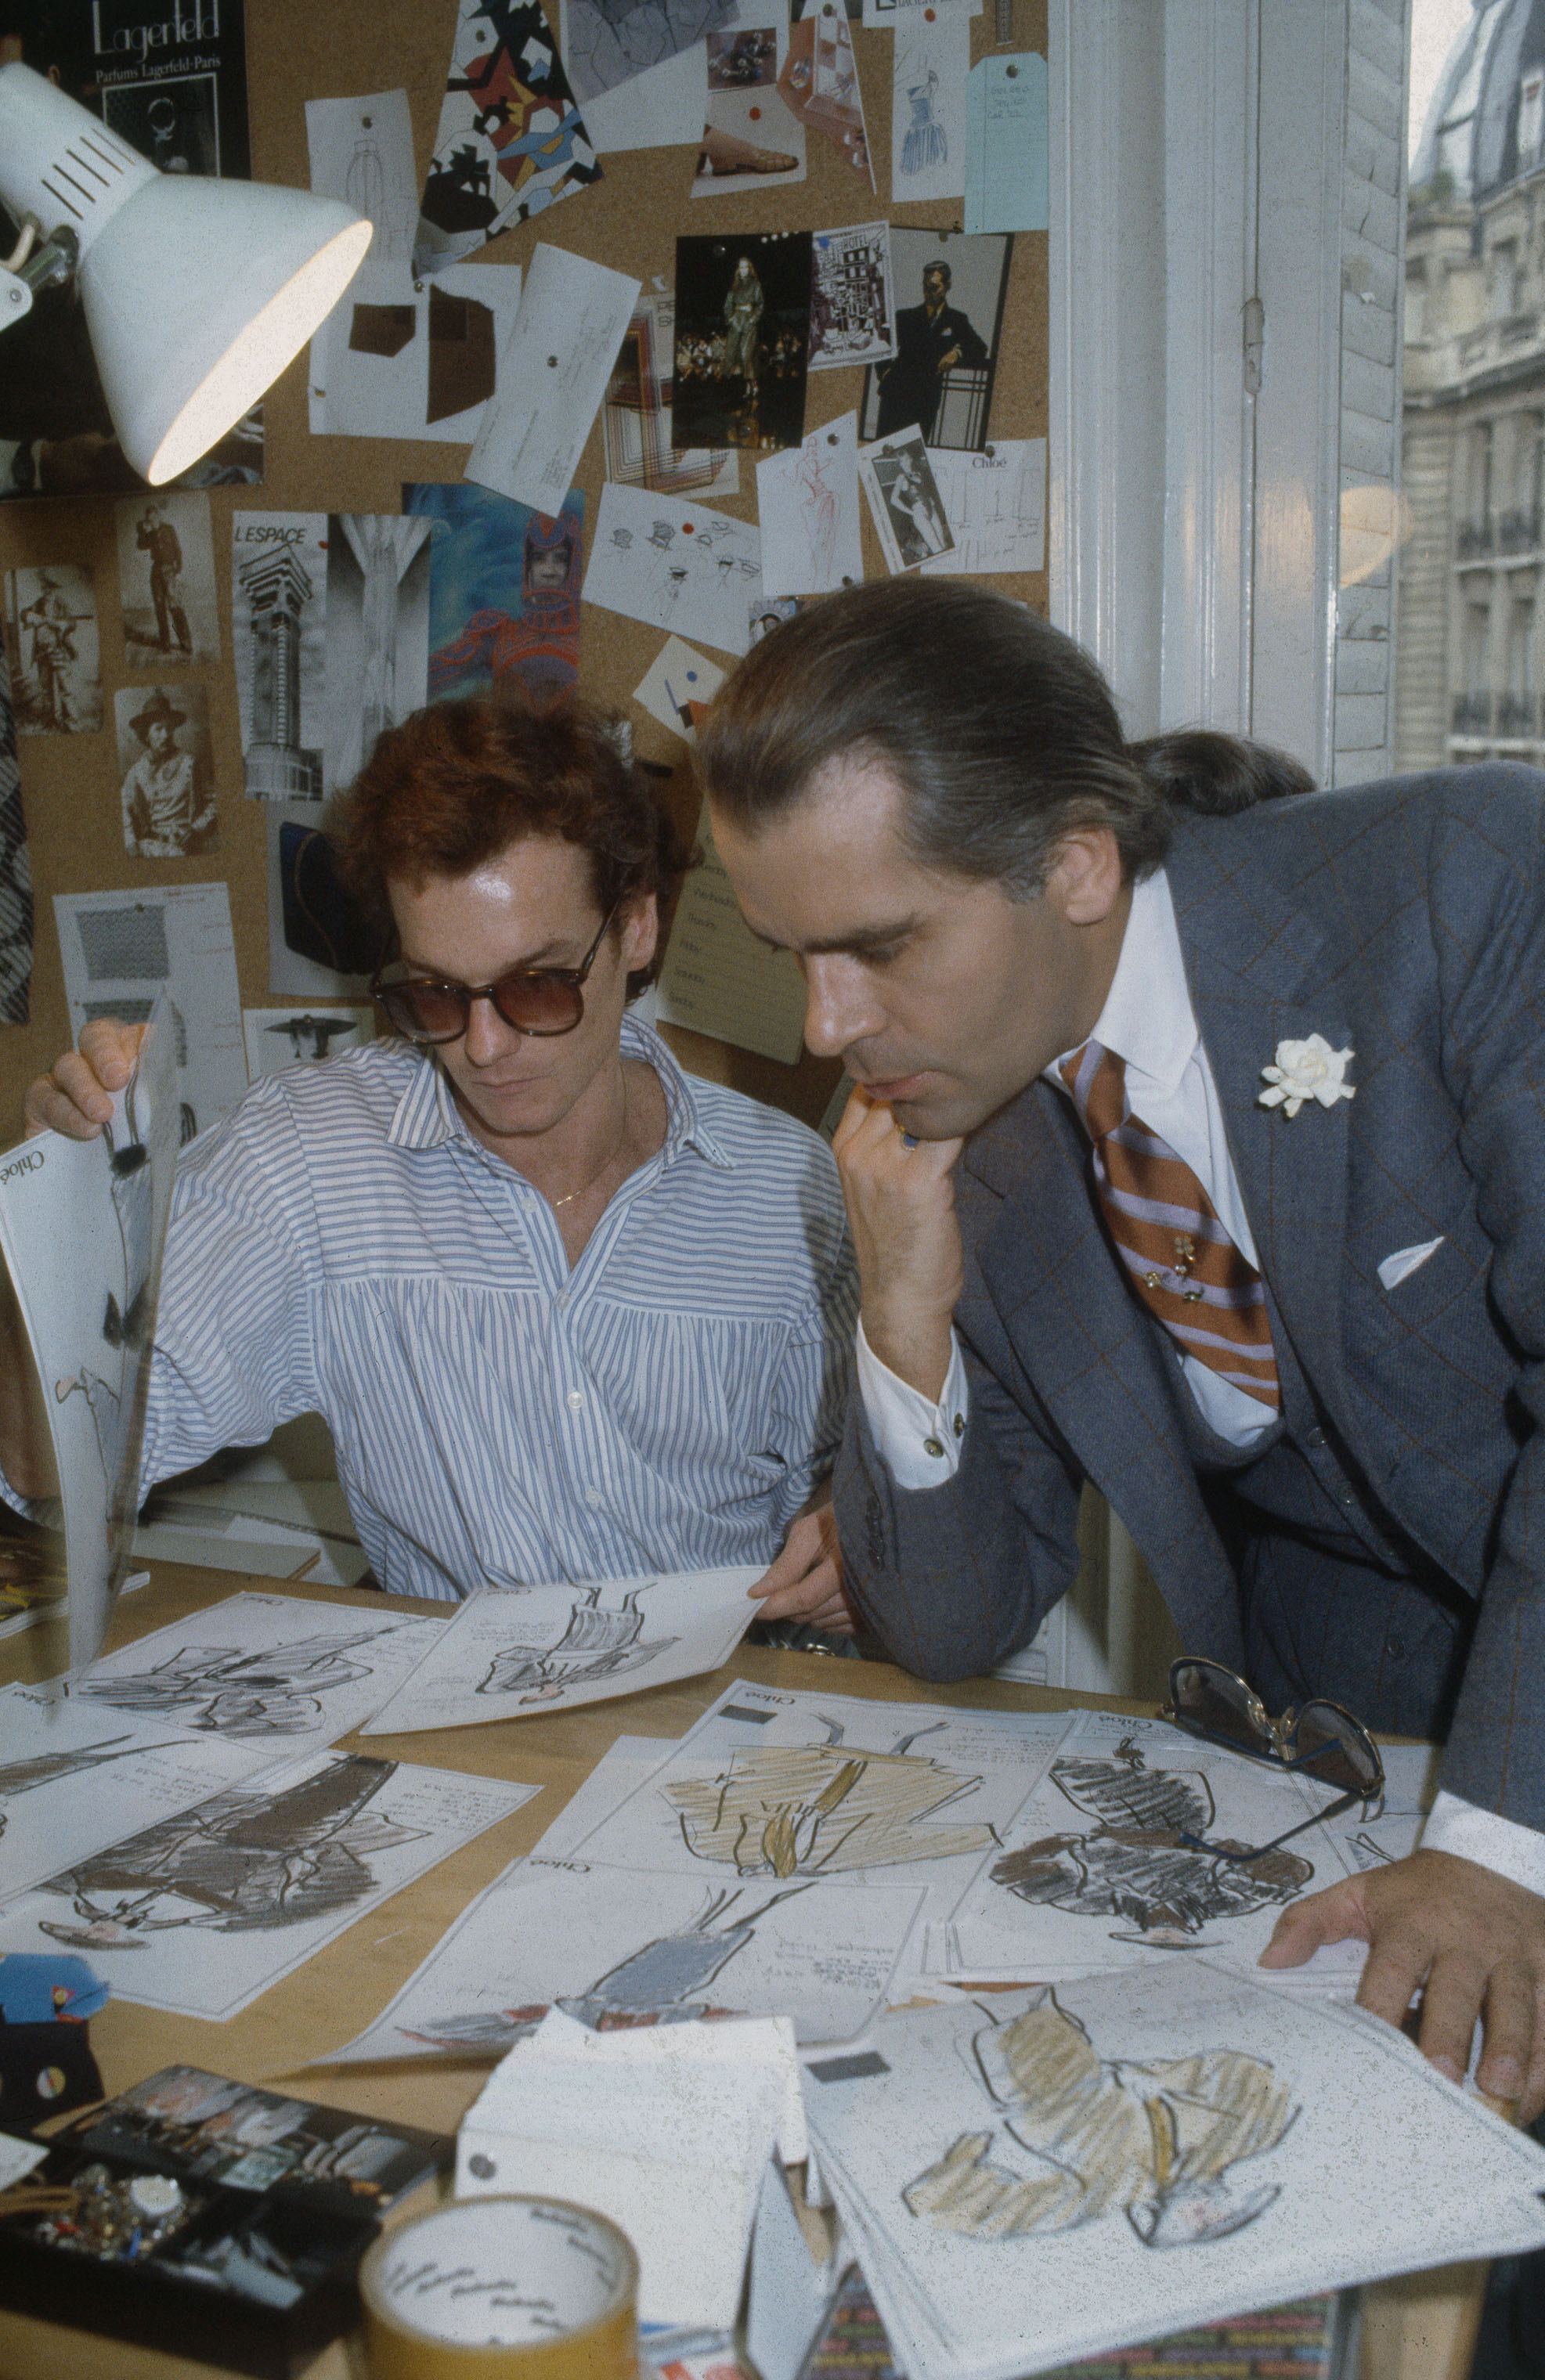 Karl Lagerfeld at work at Chloe's Paris studio circa 1983.